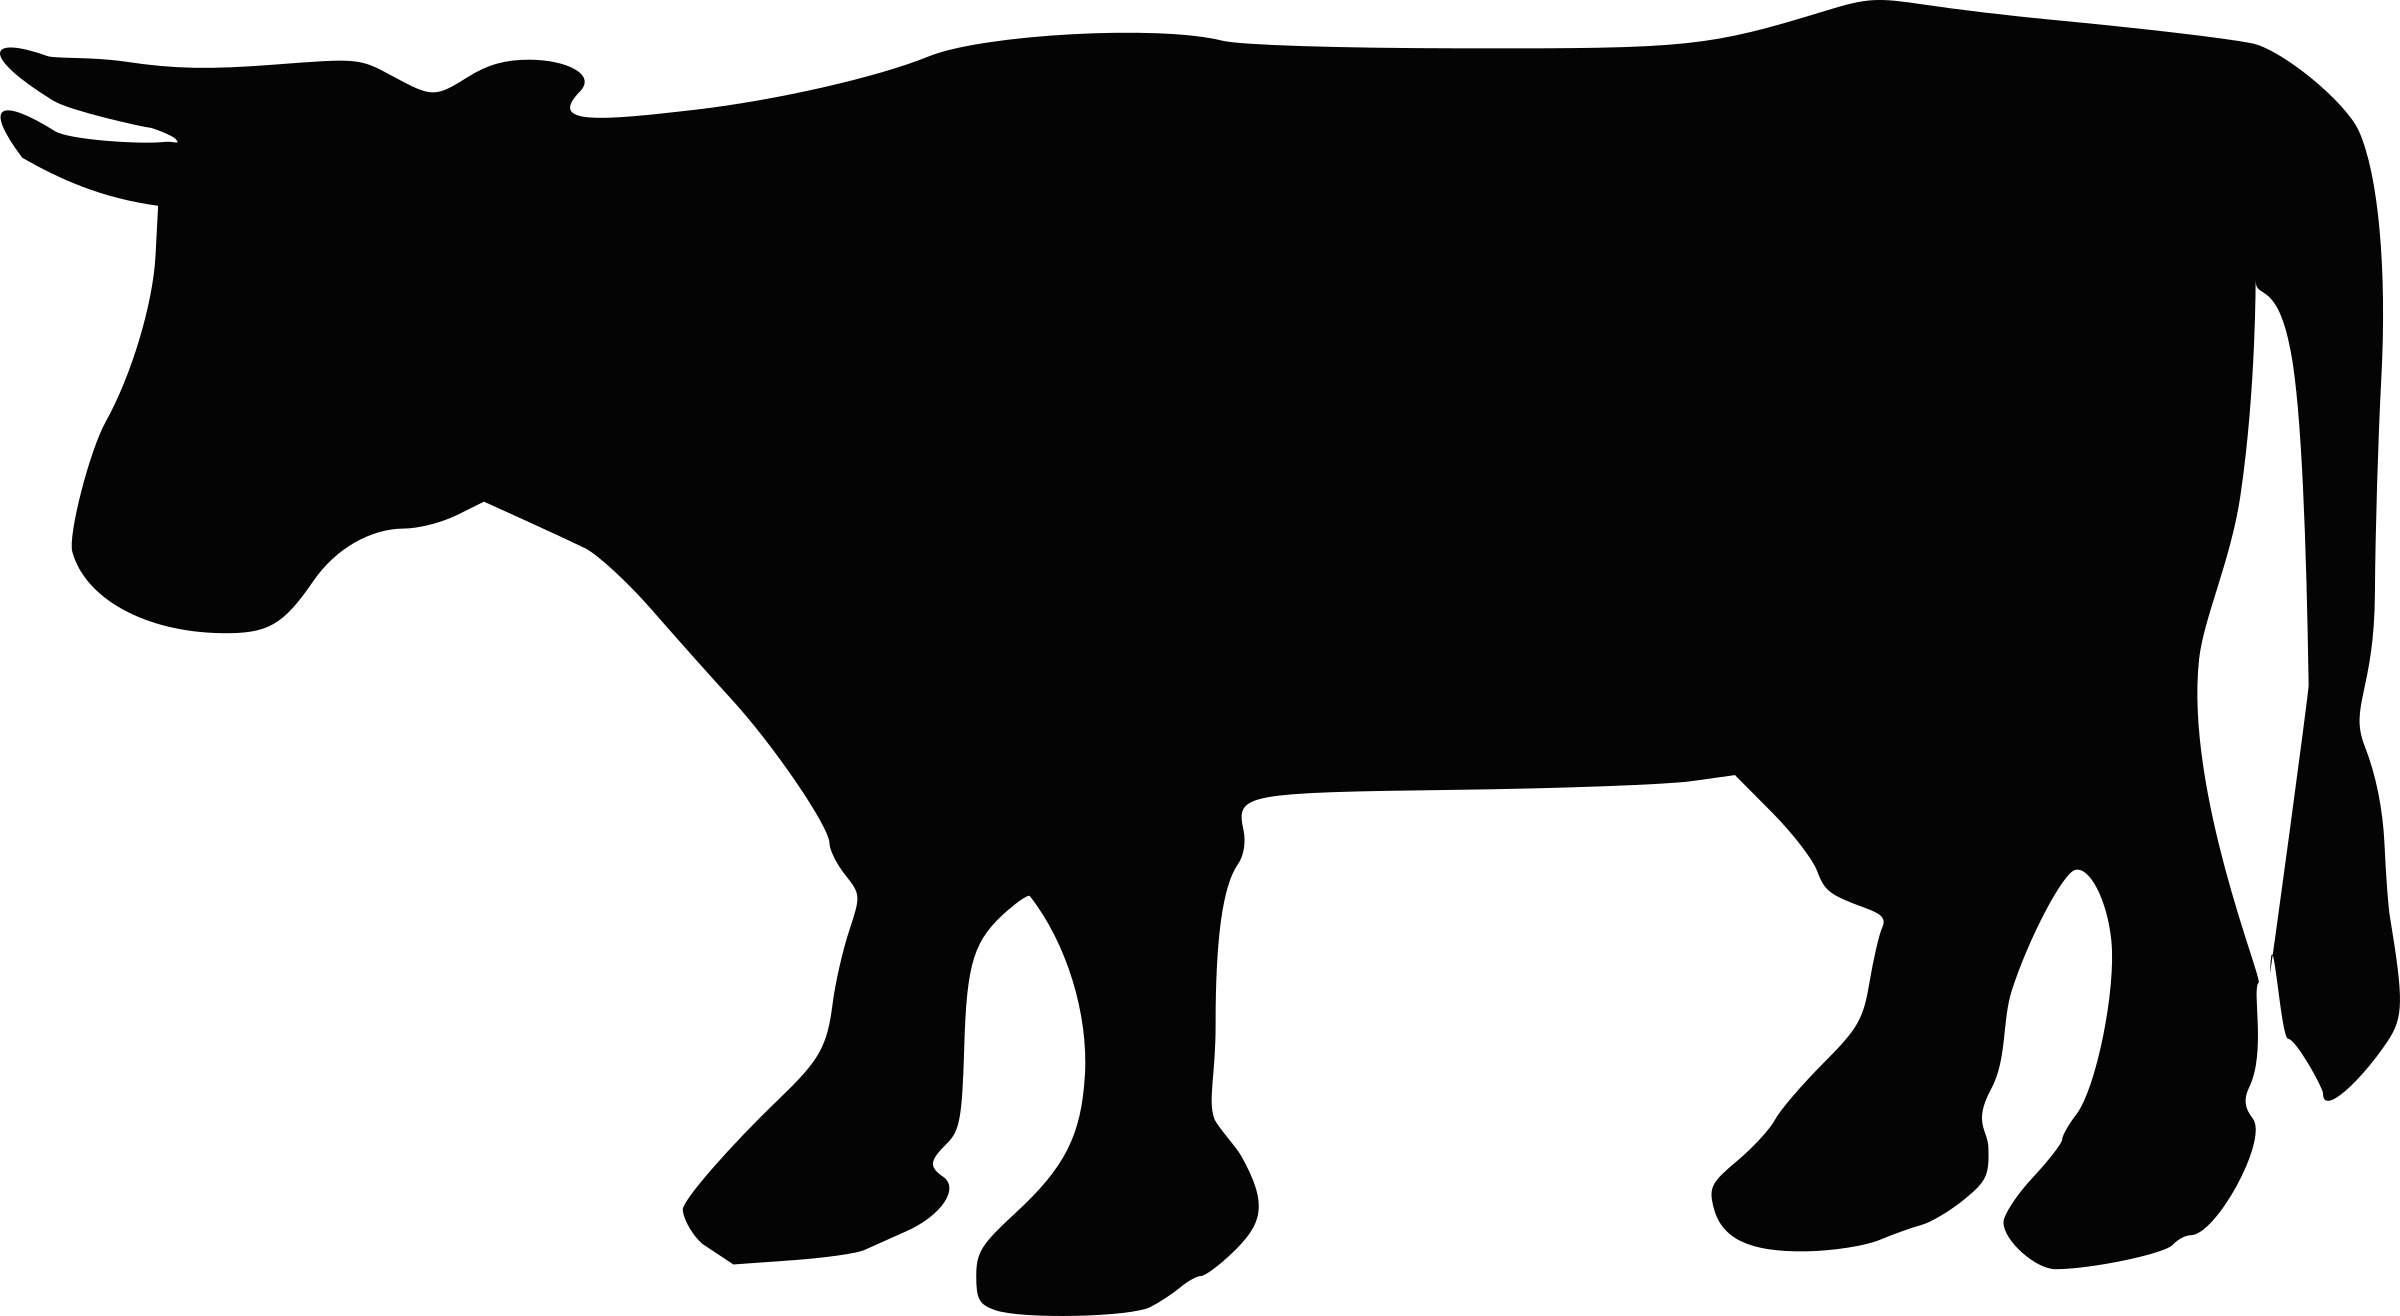 Cow silhouette png - photo#3